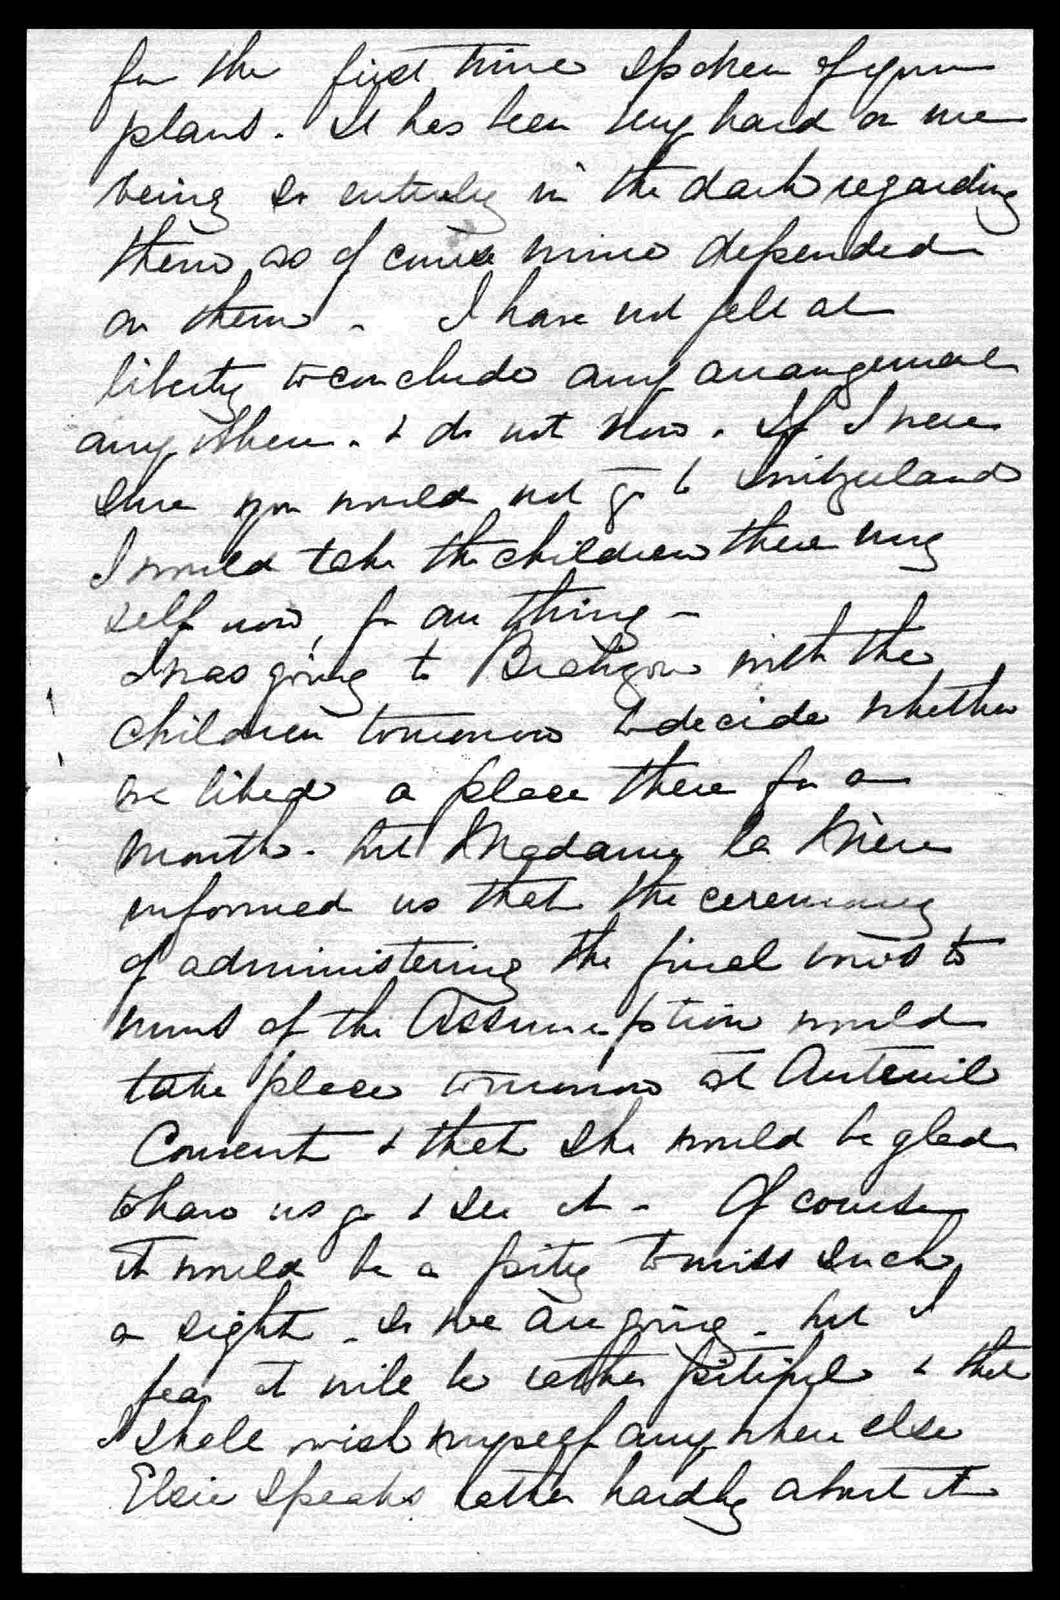 Letter from Mabel Hubbard Bell to Alexander Graham Bell, July 9, 1895